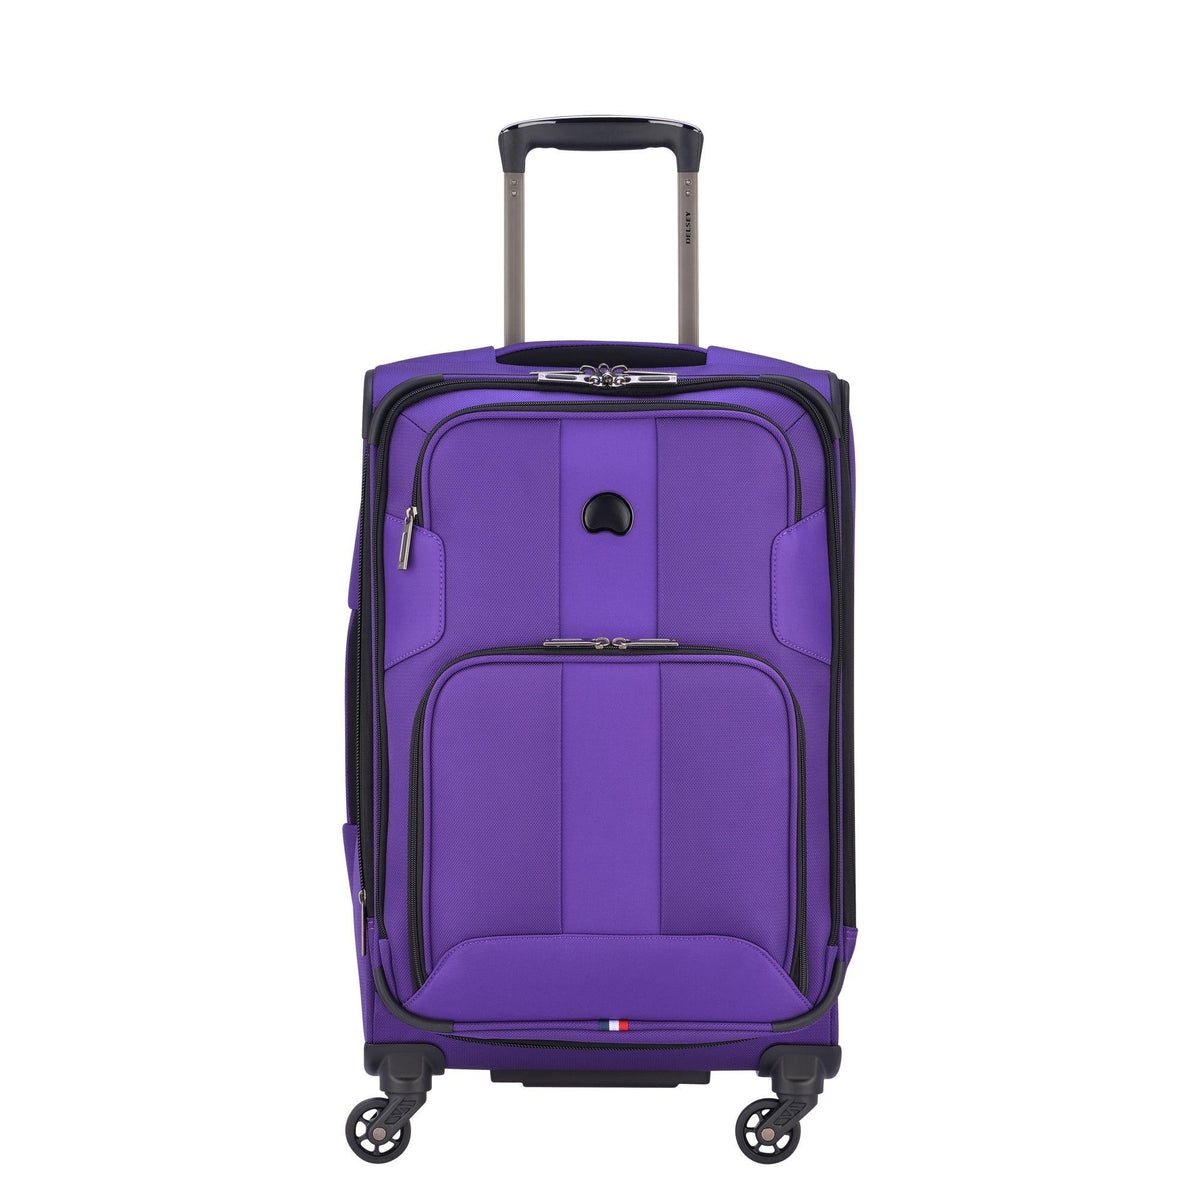 Delsey Paris Luggage Sky Max Carry On Expandable Spinner Suitcase, Purple